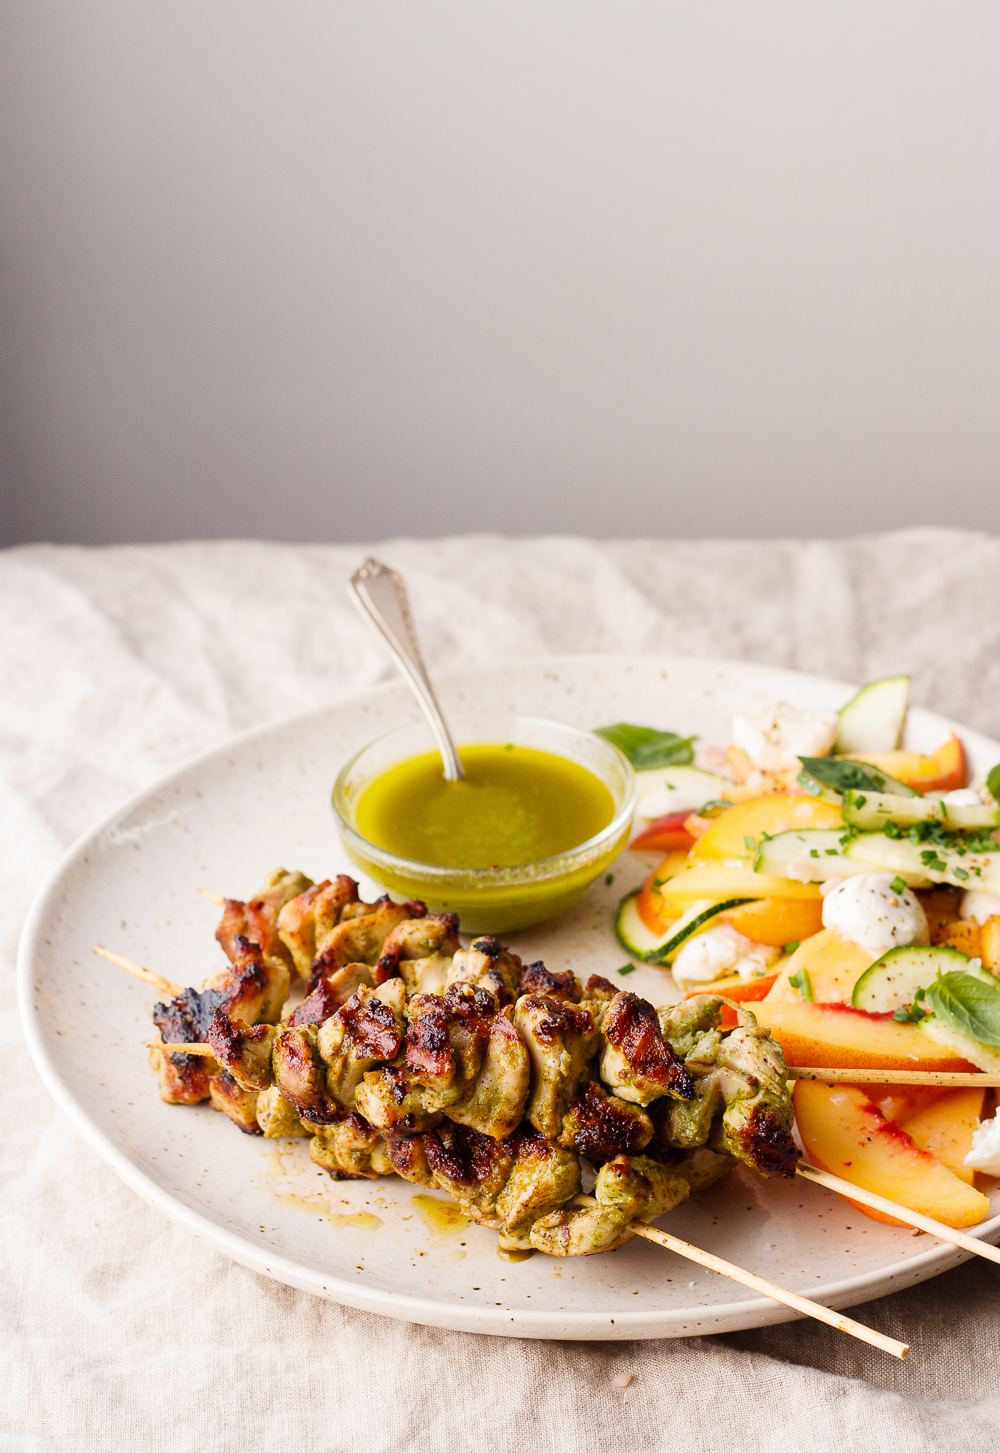 grilled chicken with peach salad 2 (1 of 1)-2.jpg